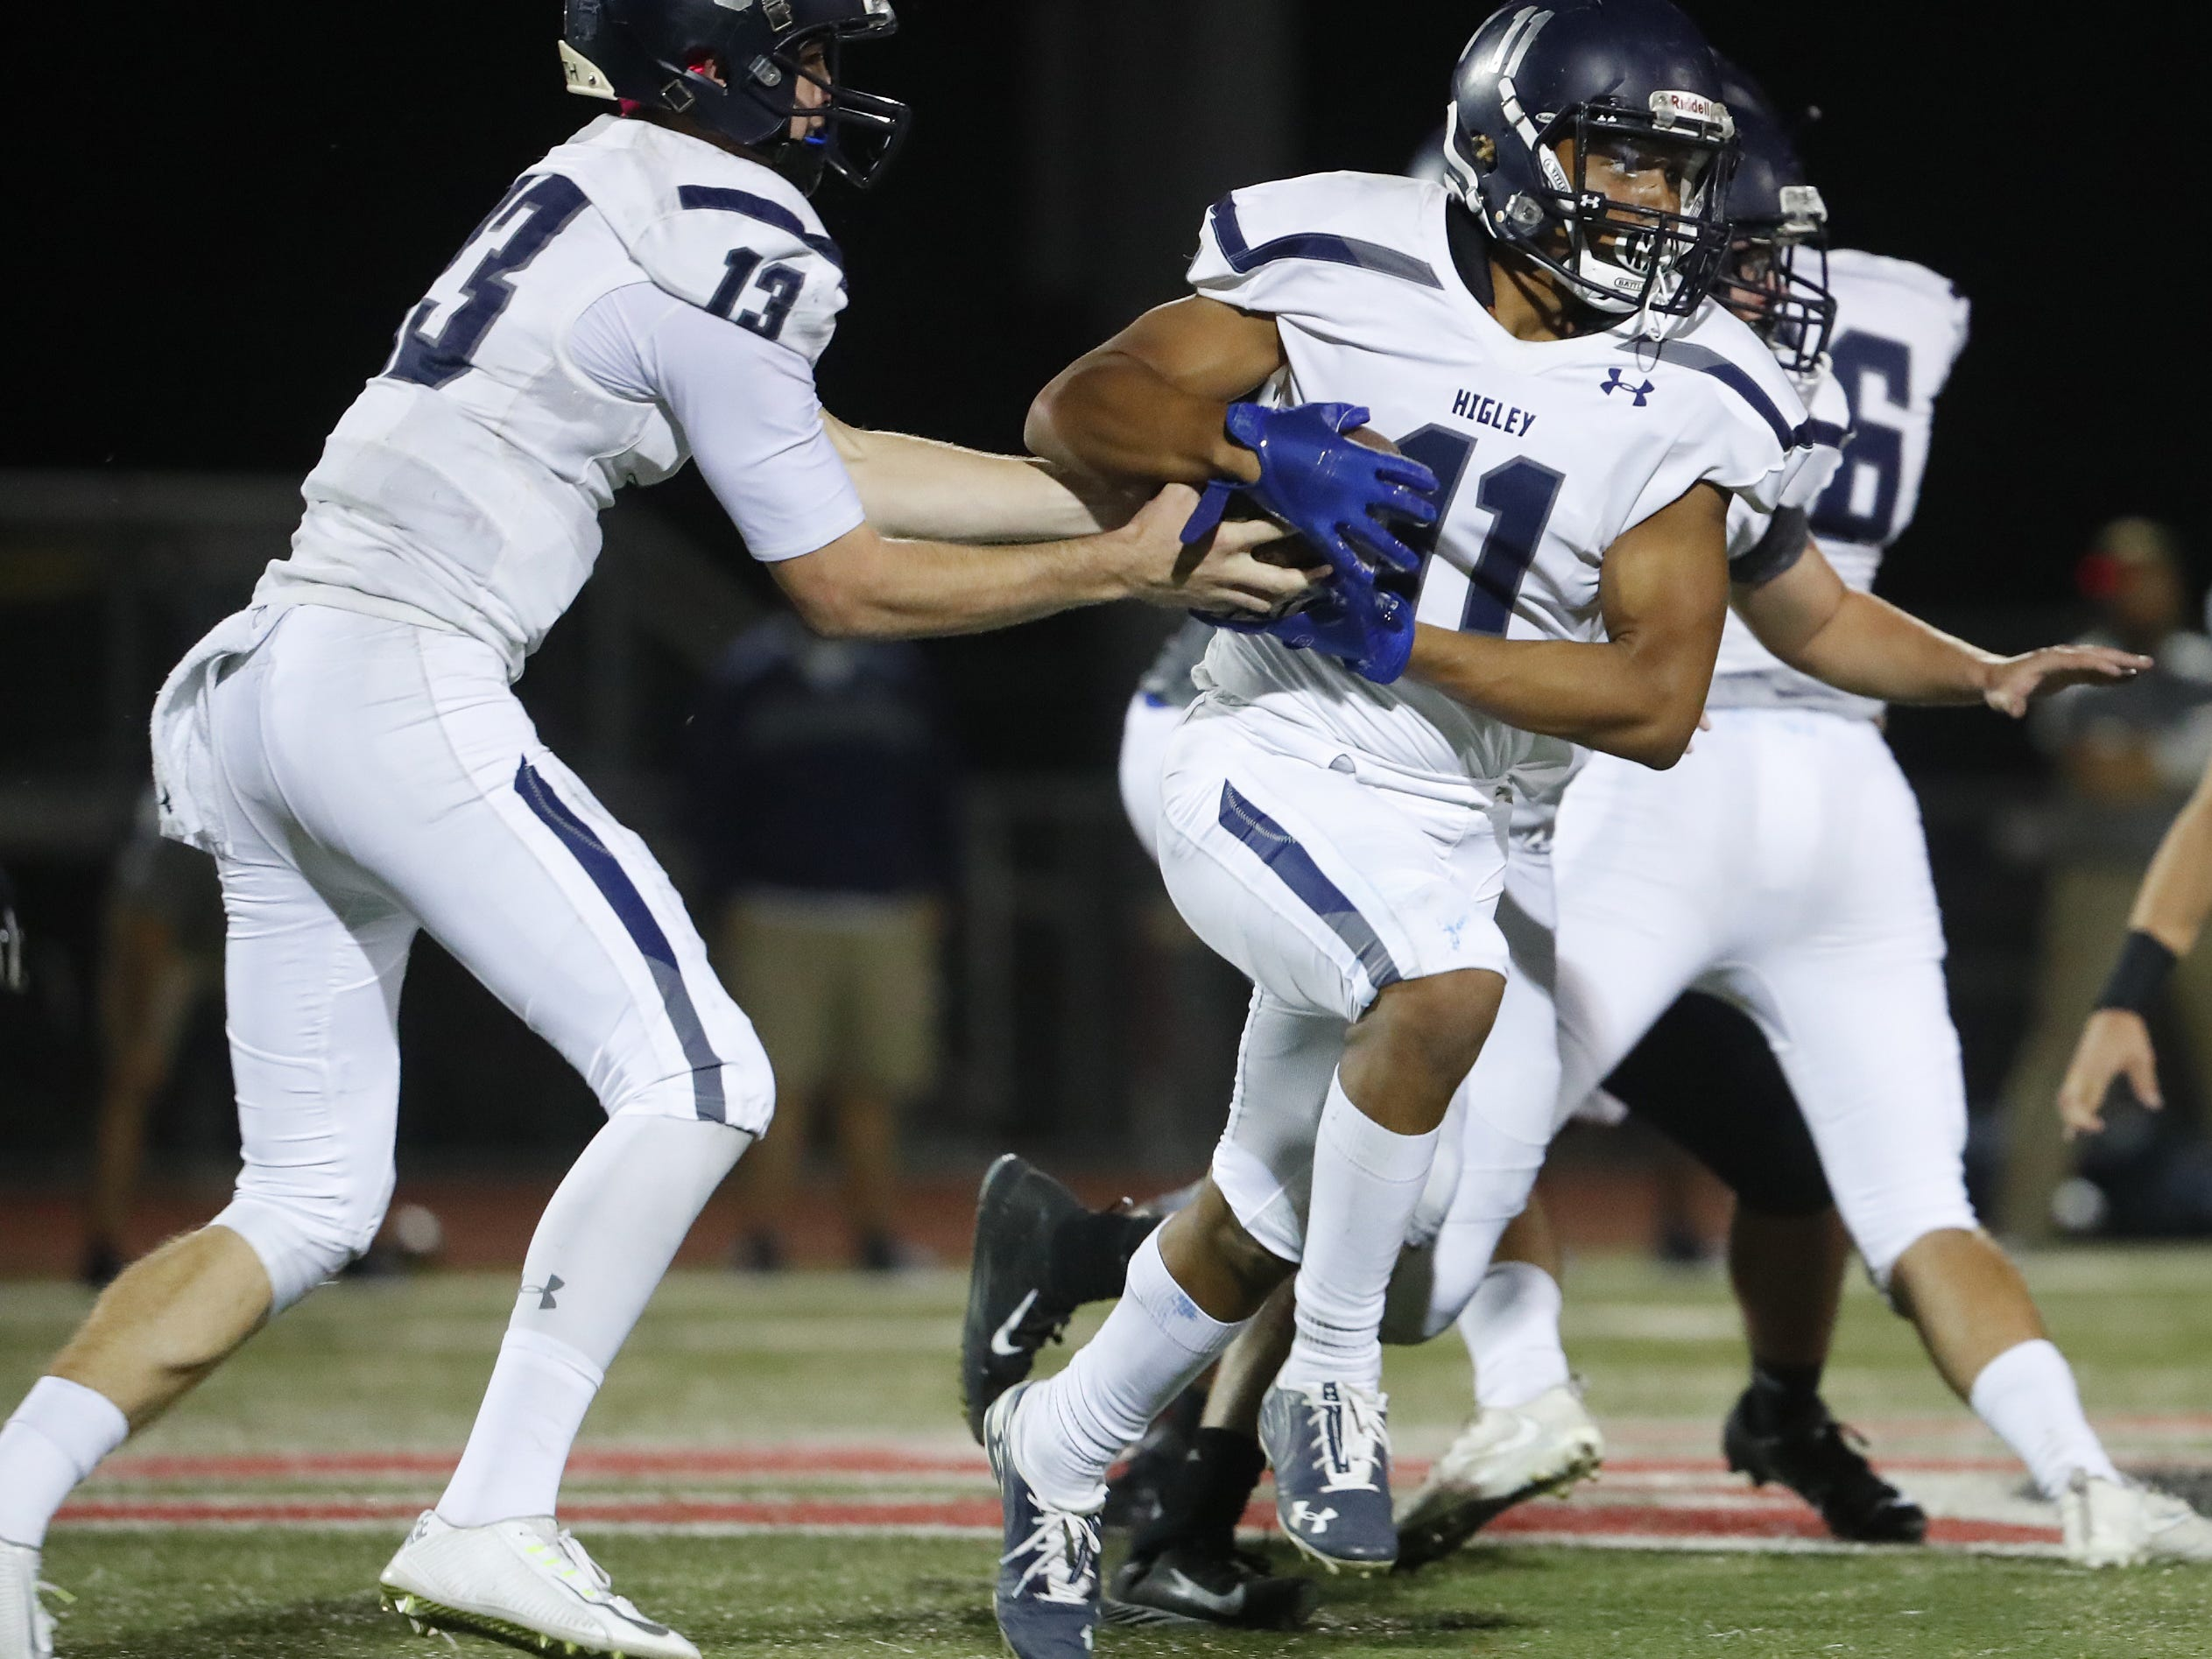 Higley's Spencer Brasch (13) hands the ball off to Isaiah Eastman (11) against Williams Field at Williams Field High School in Gilbert, Ariz. on October 26, 2018.